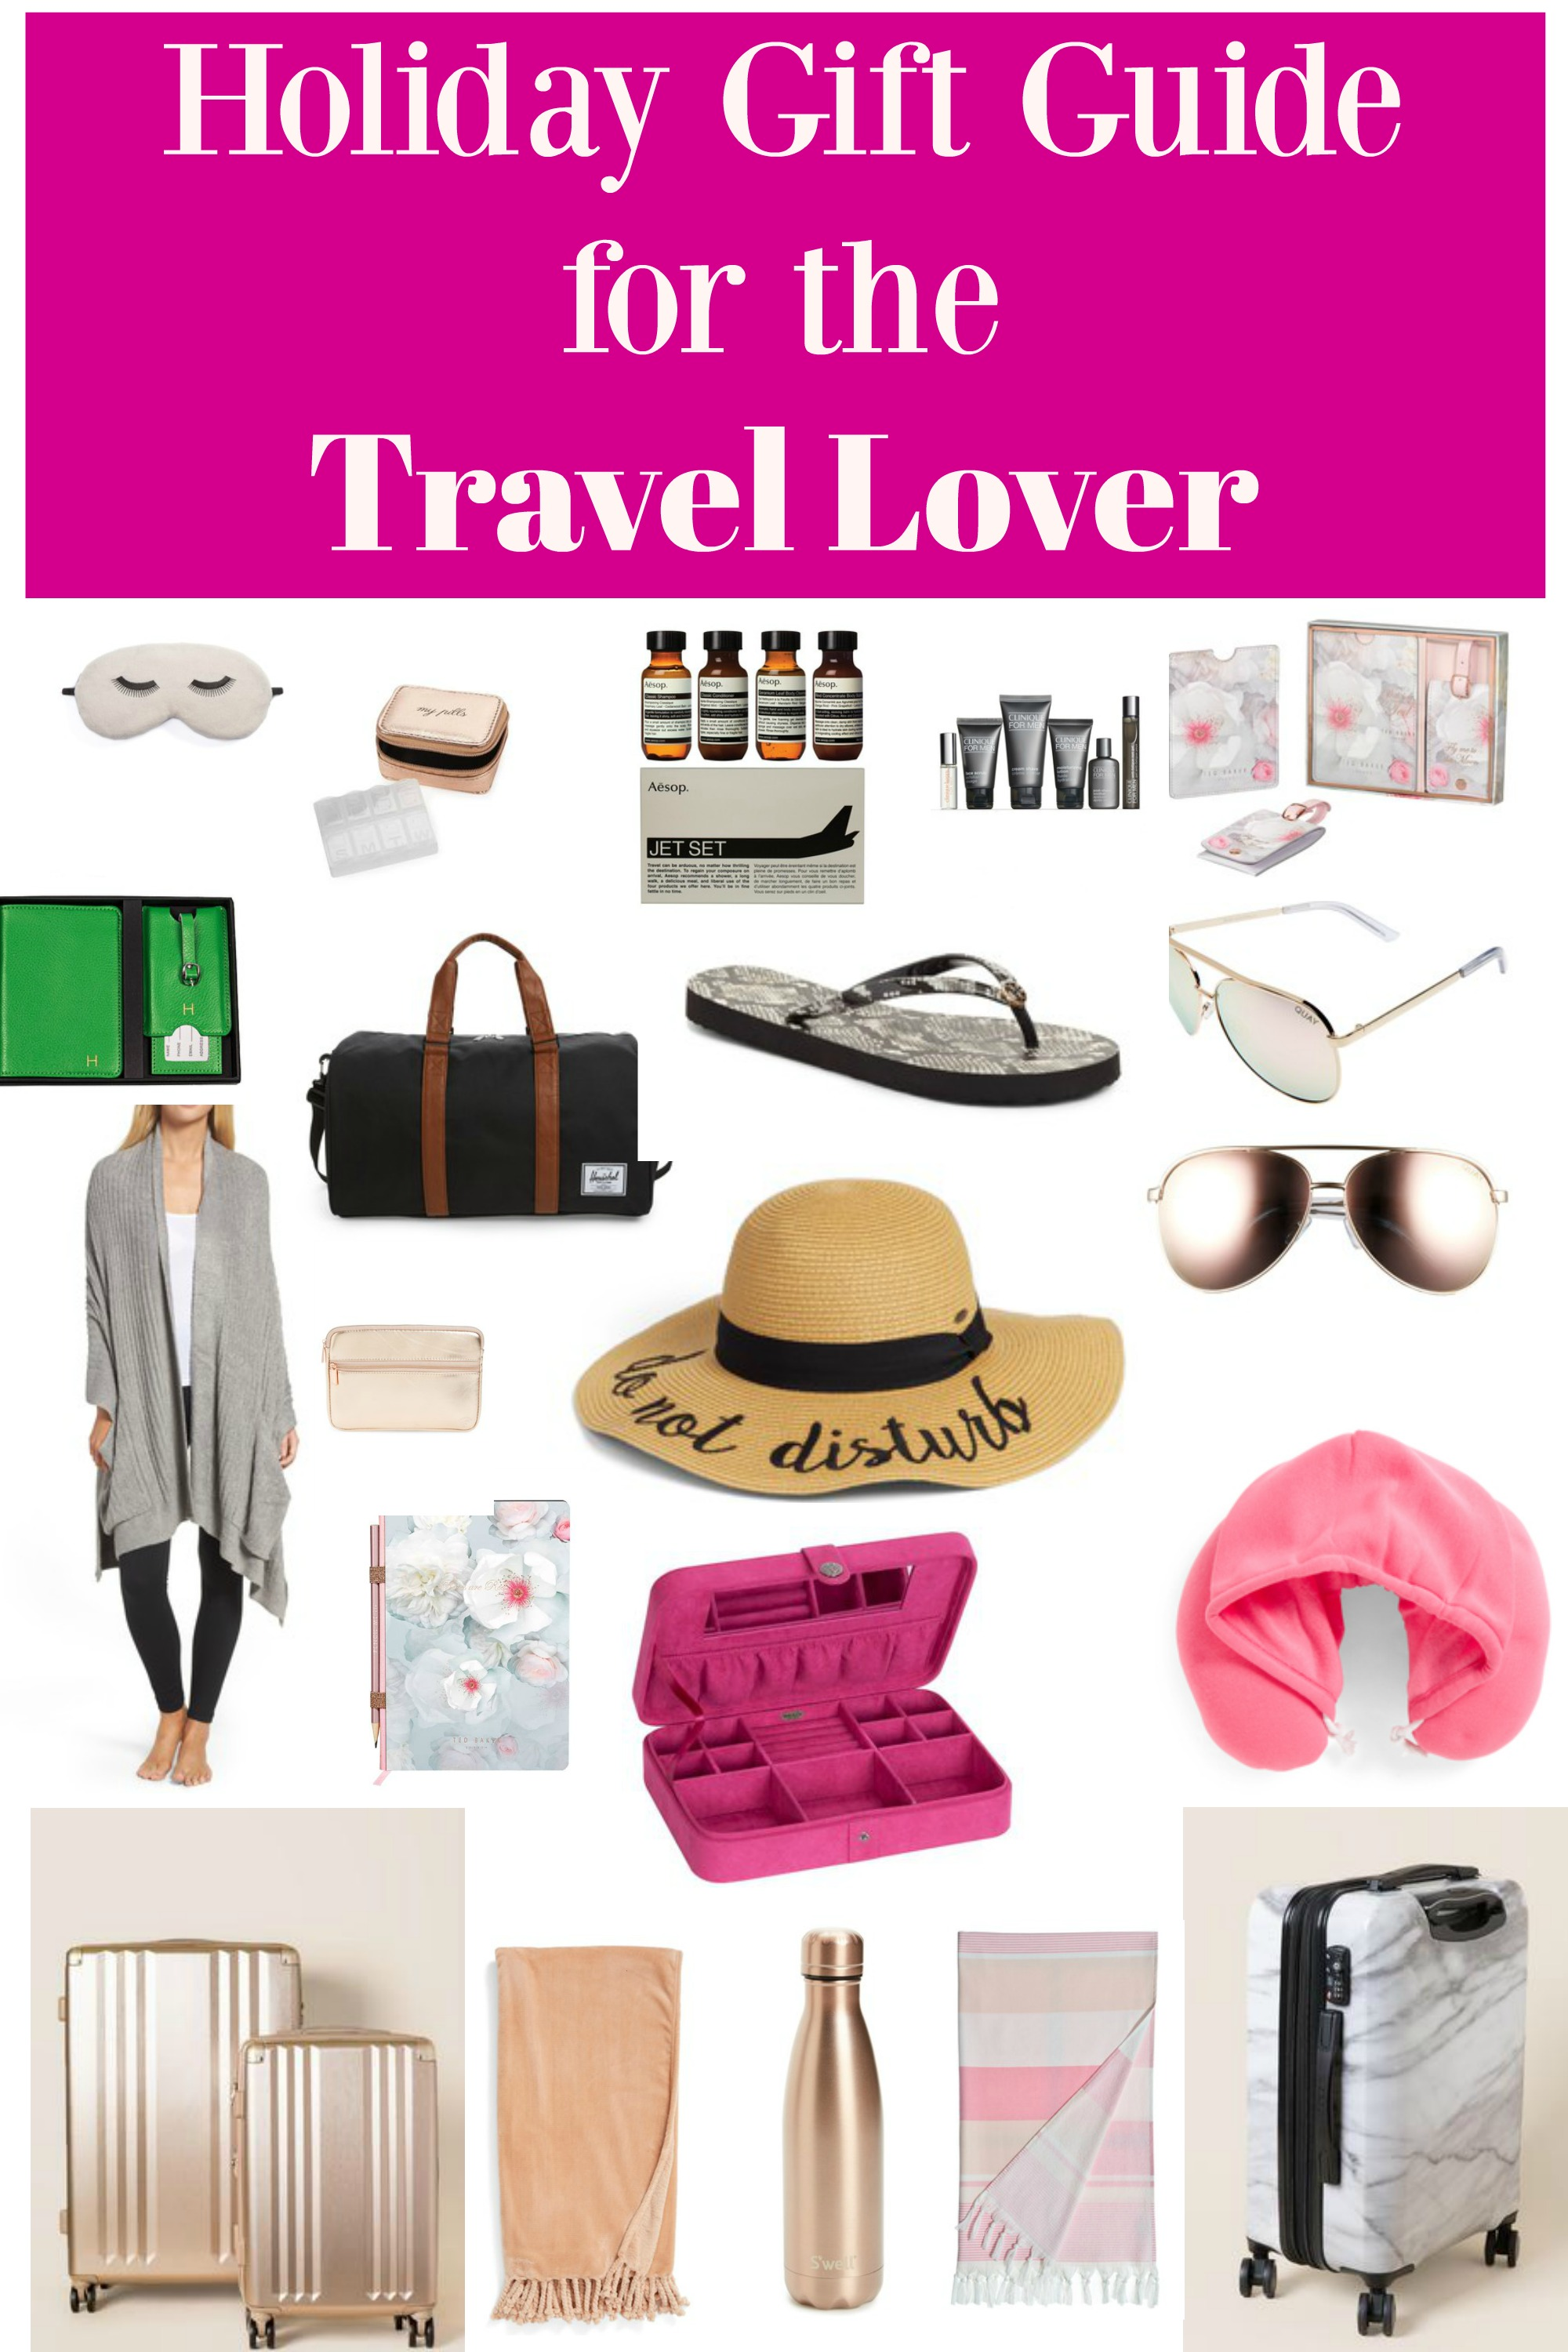 Holiday Gift Guide for the Travel Lover